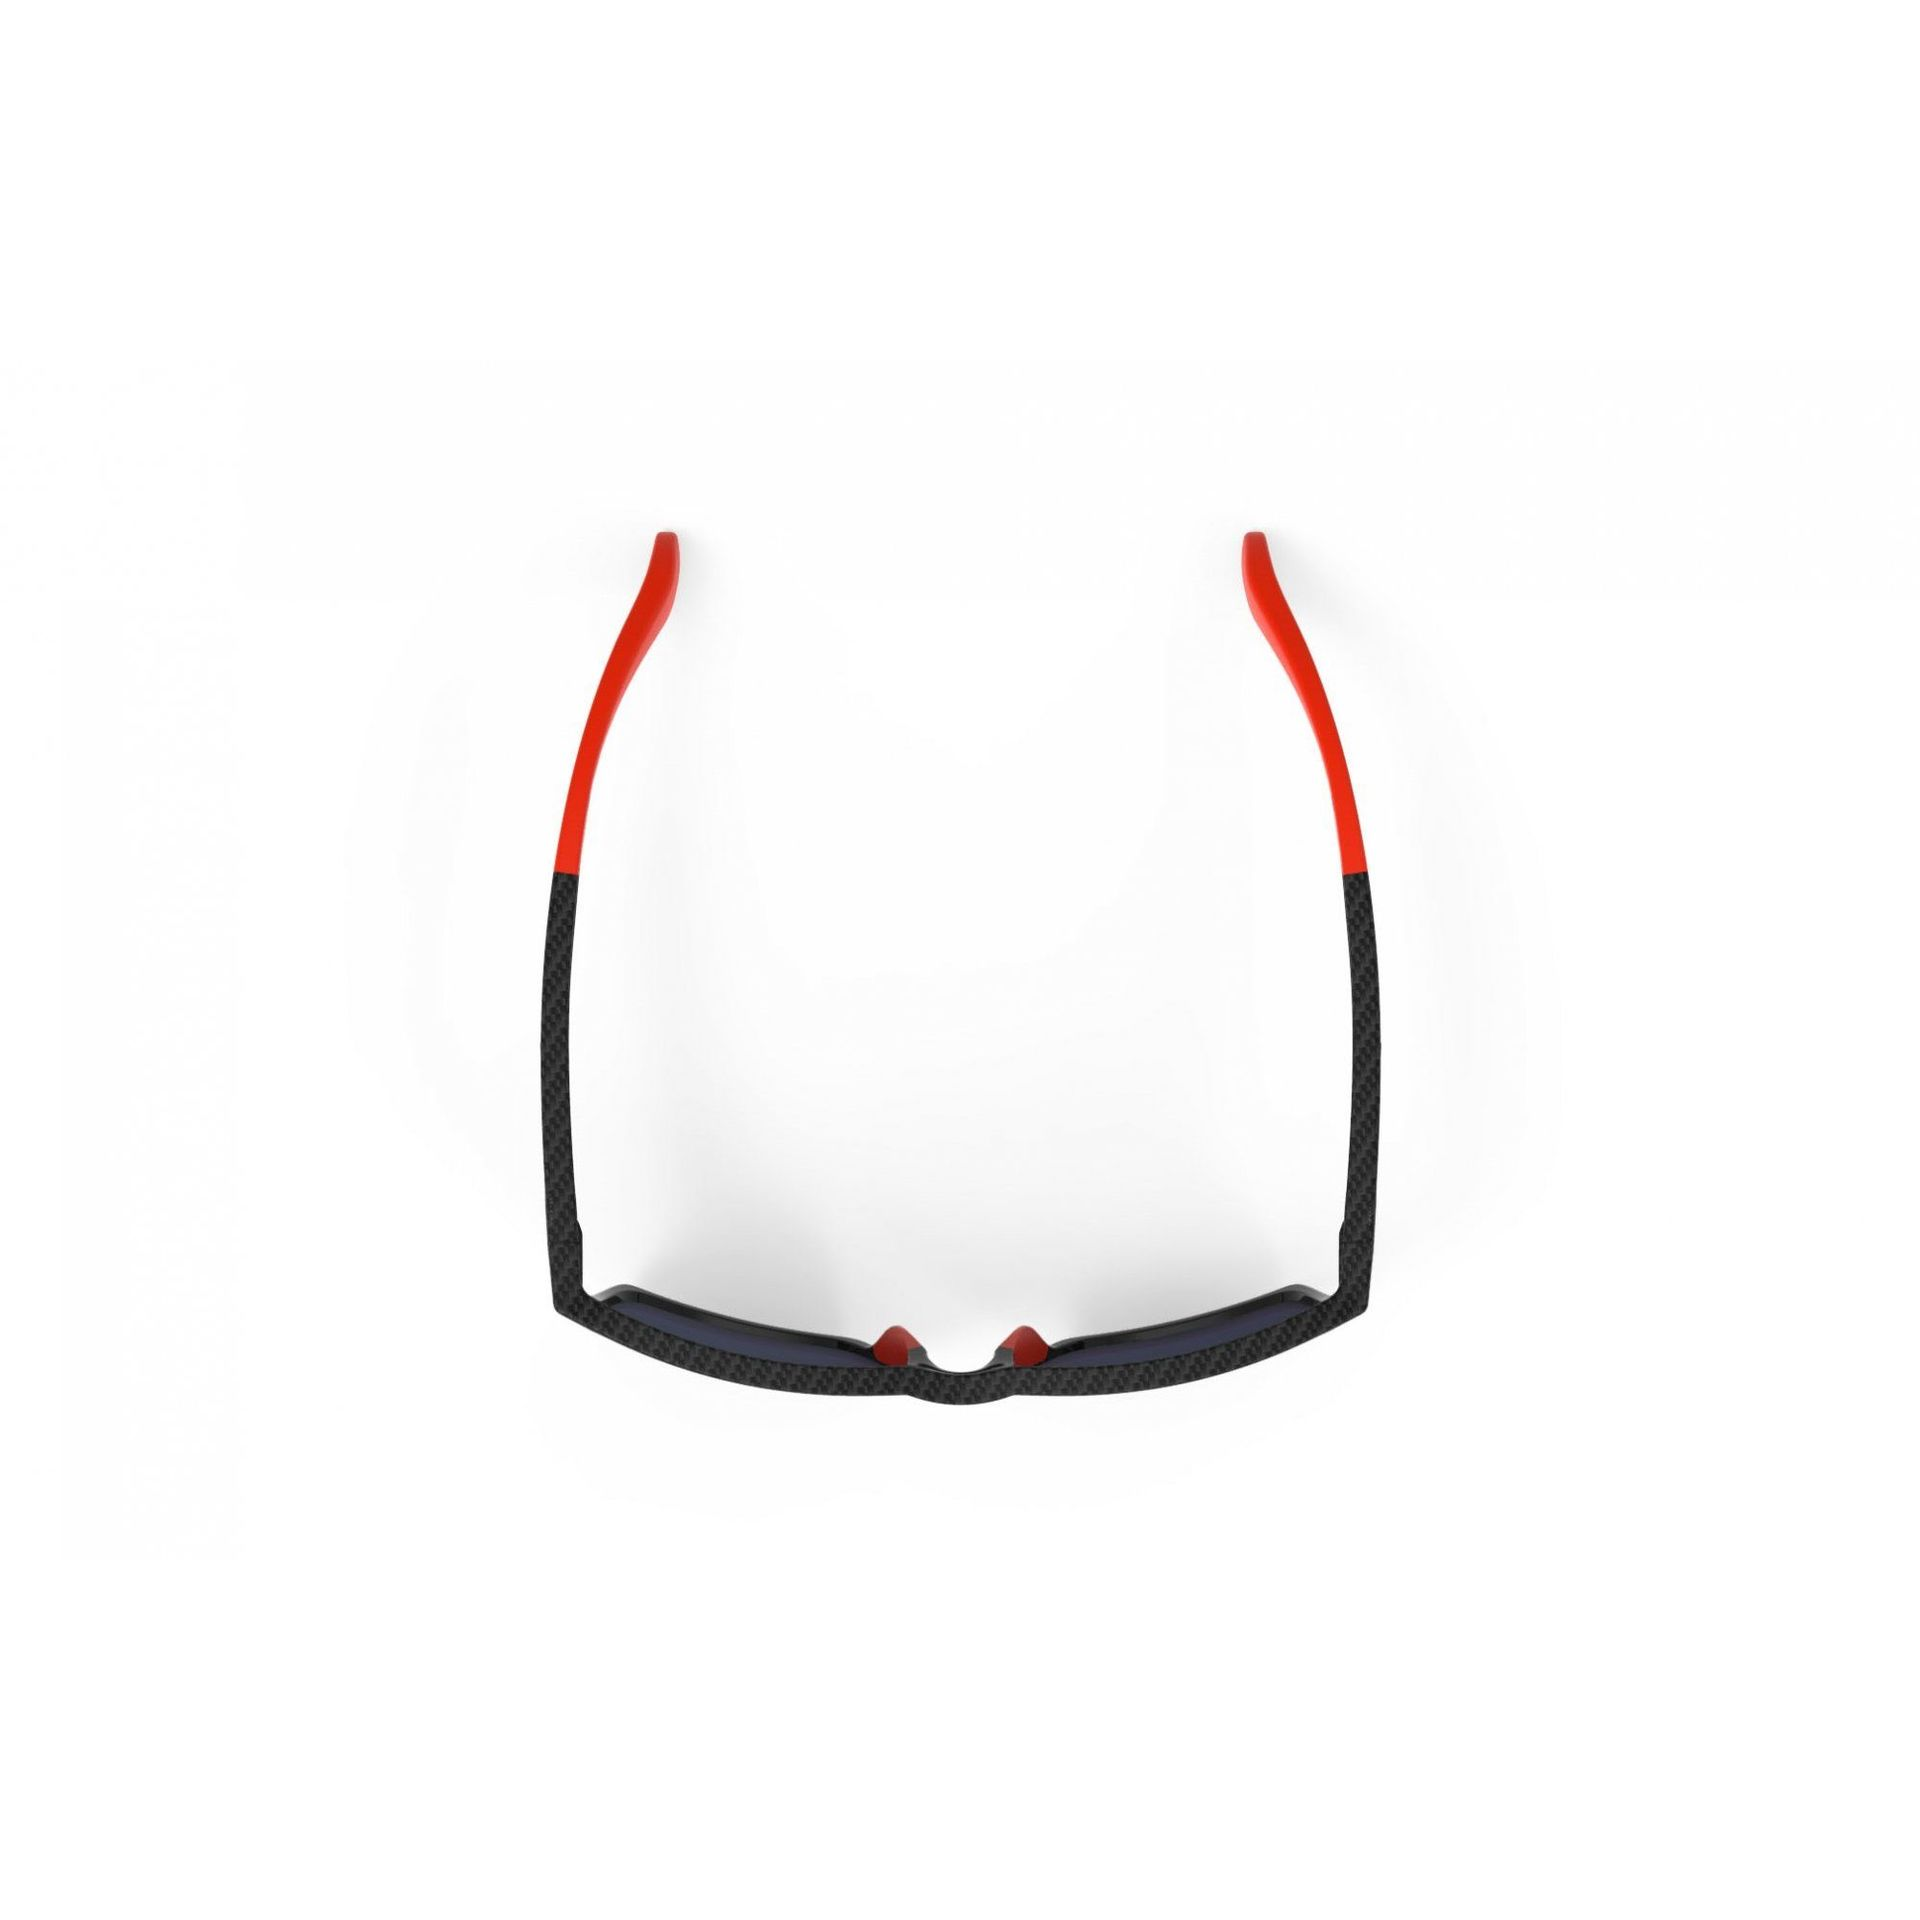 OKULARY RUDY PROJECT SPINAIR 57 CARBONIUM + ML RED SP573819 6